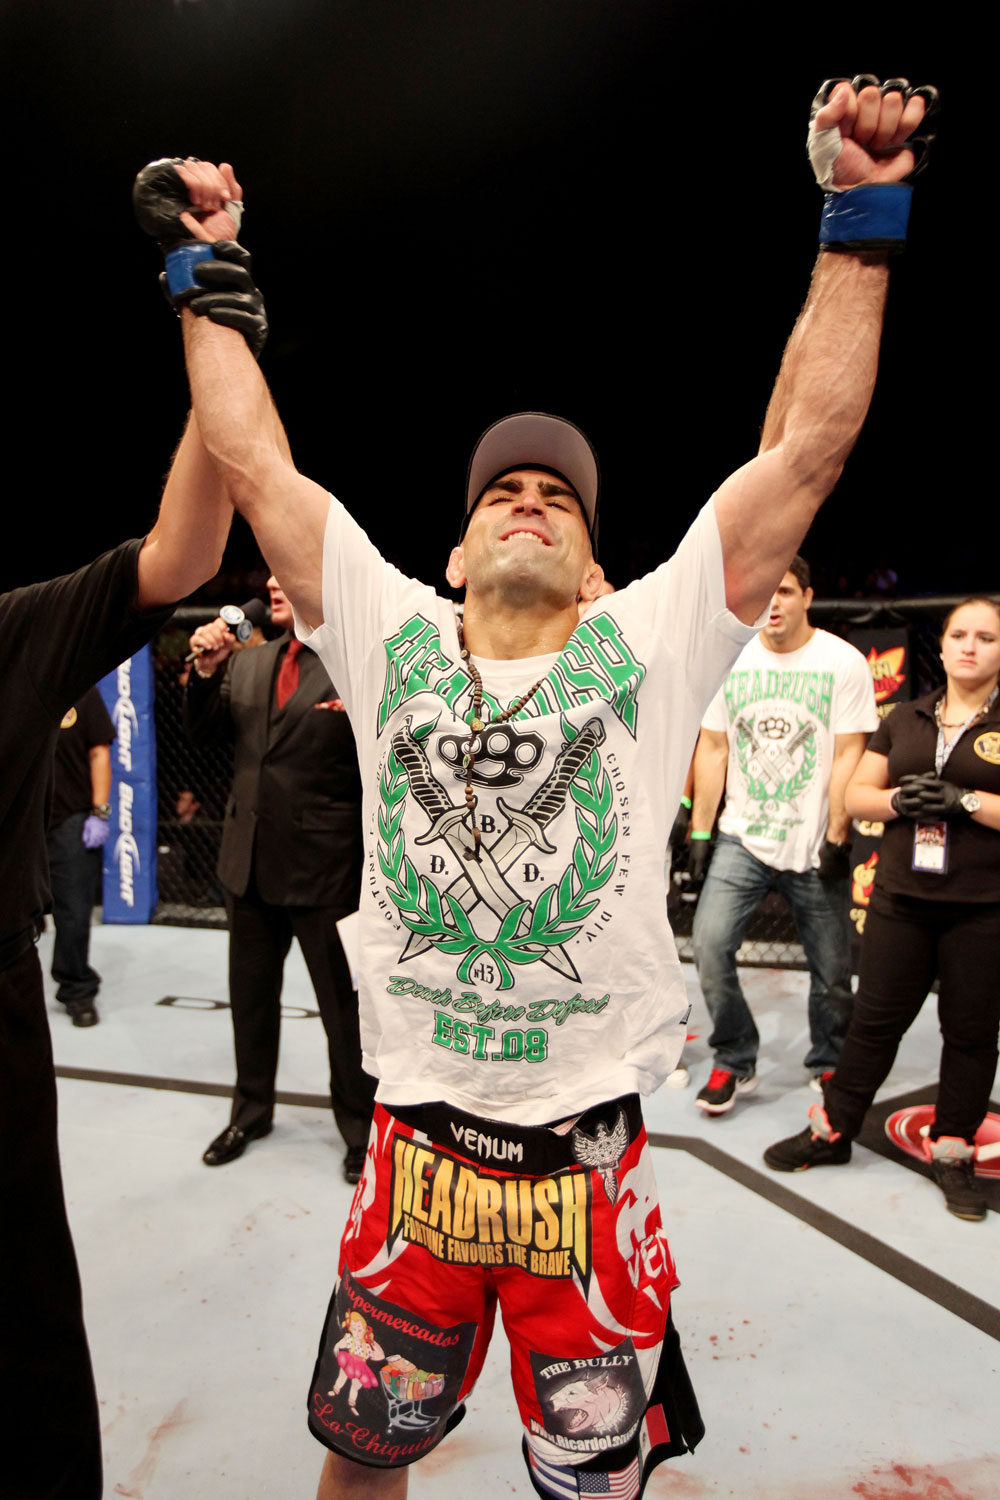 ATLANTIC CITY, NJ - JUNE 22: Ricardo Lamas celebrates his win by unanimous decision over Hatsu Hioki (not pictured) in a featherweight bout during UFC on FX 4 at Revel Casino on June 22, 2012 in Atlantic City, New Jersey.  (Photo by Nick Laham/Zuffa LLC/Zuffa LLC)